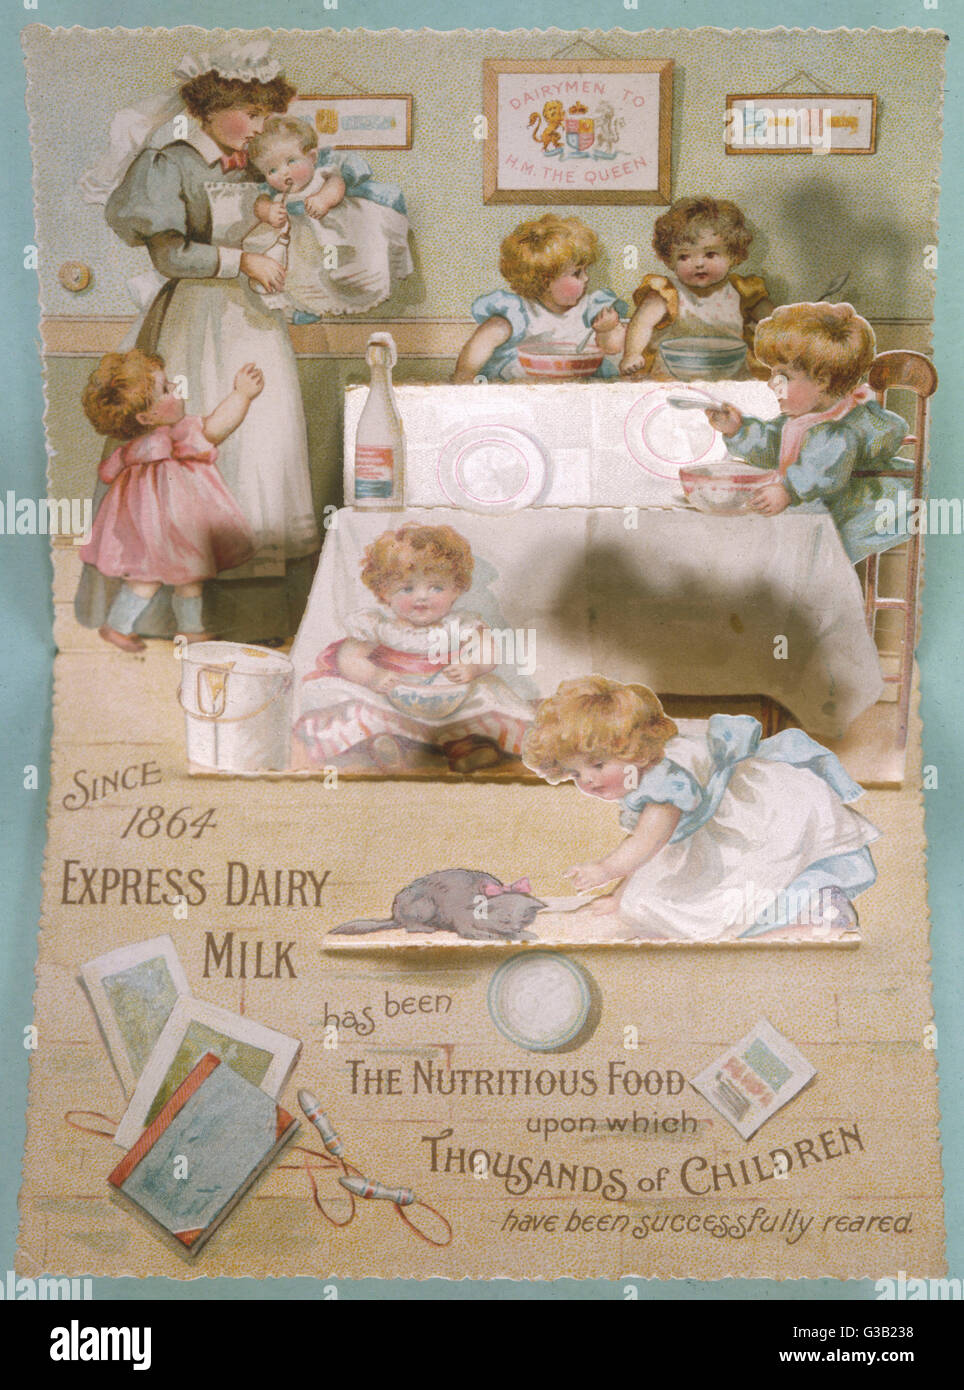 Express Dairy Milk - nutritious food for thousands of children       Date: circa 1890s - Stock Image